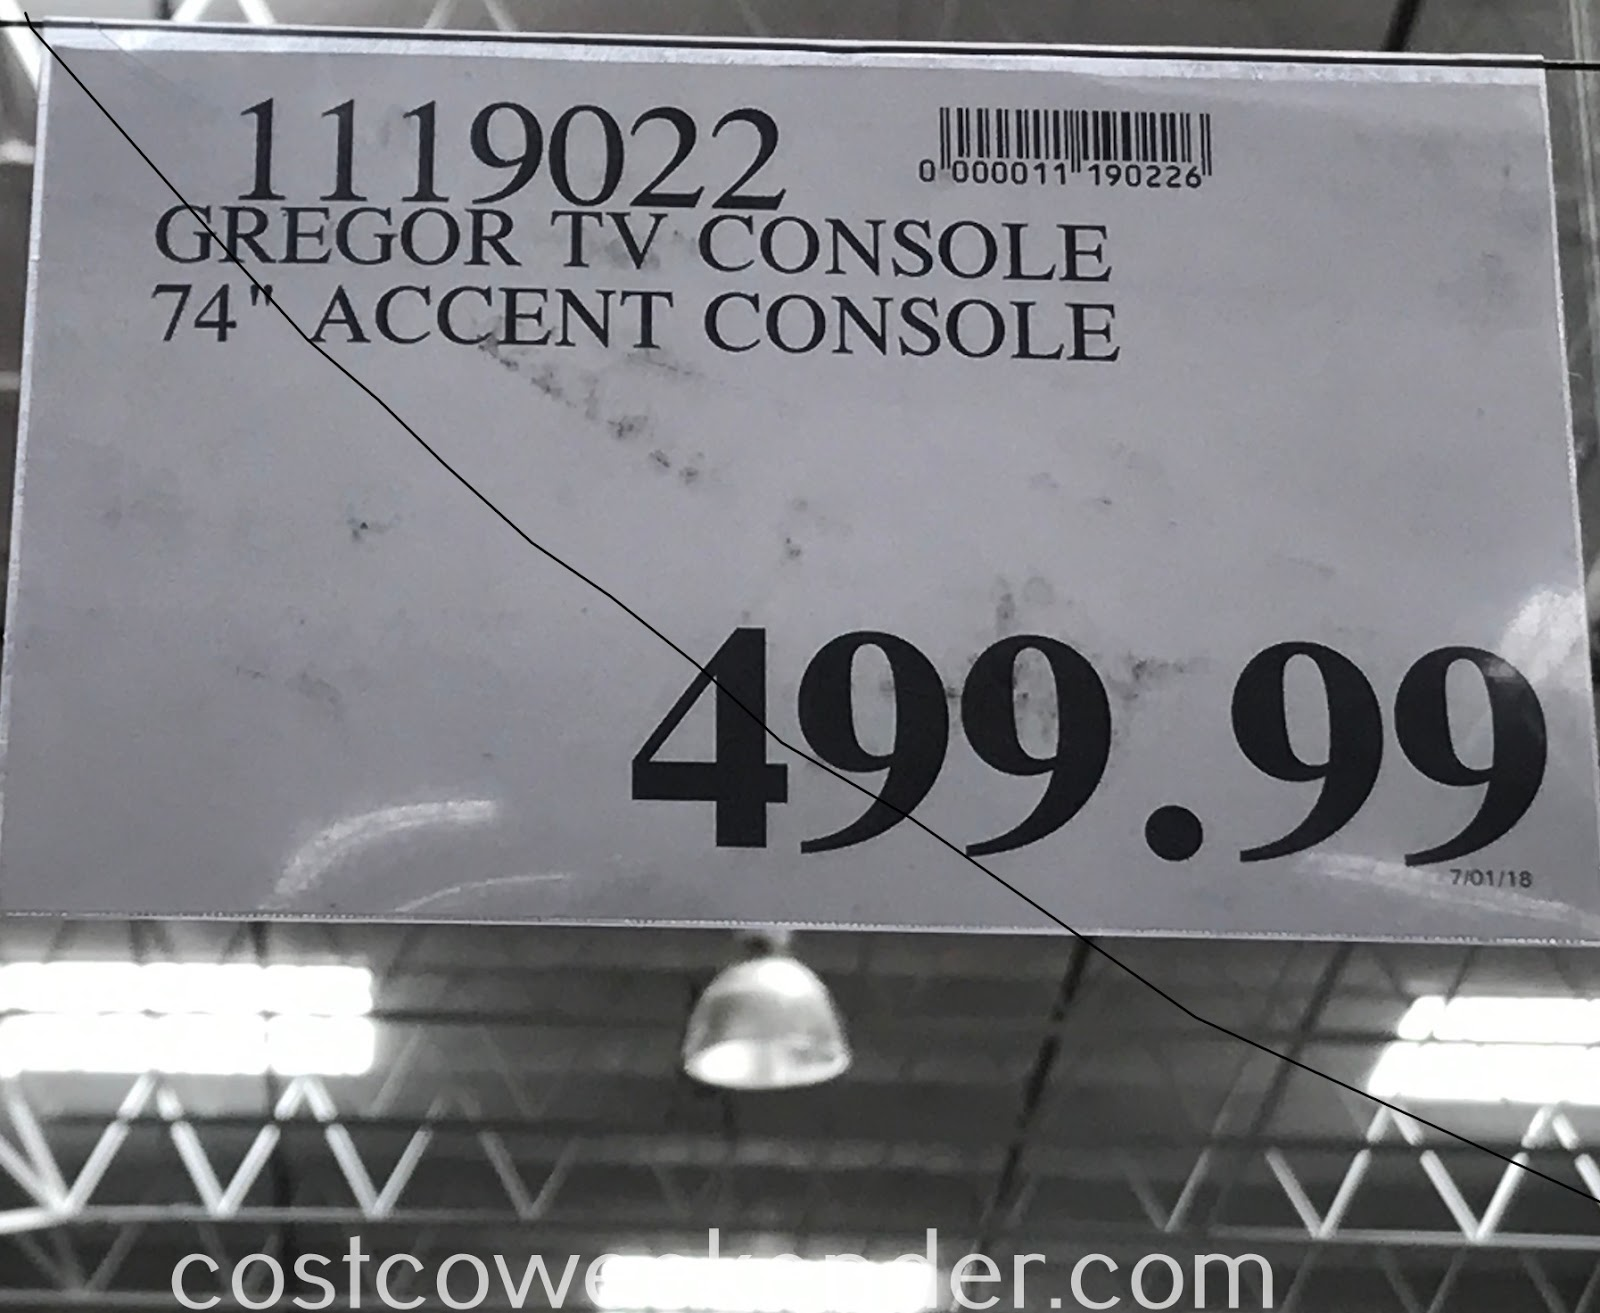 Deal for the Gregor Accent TV Console at Costco